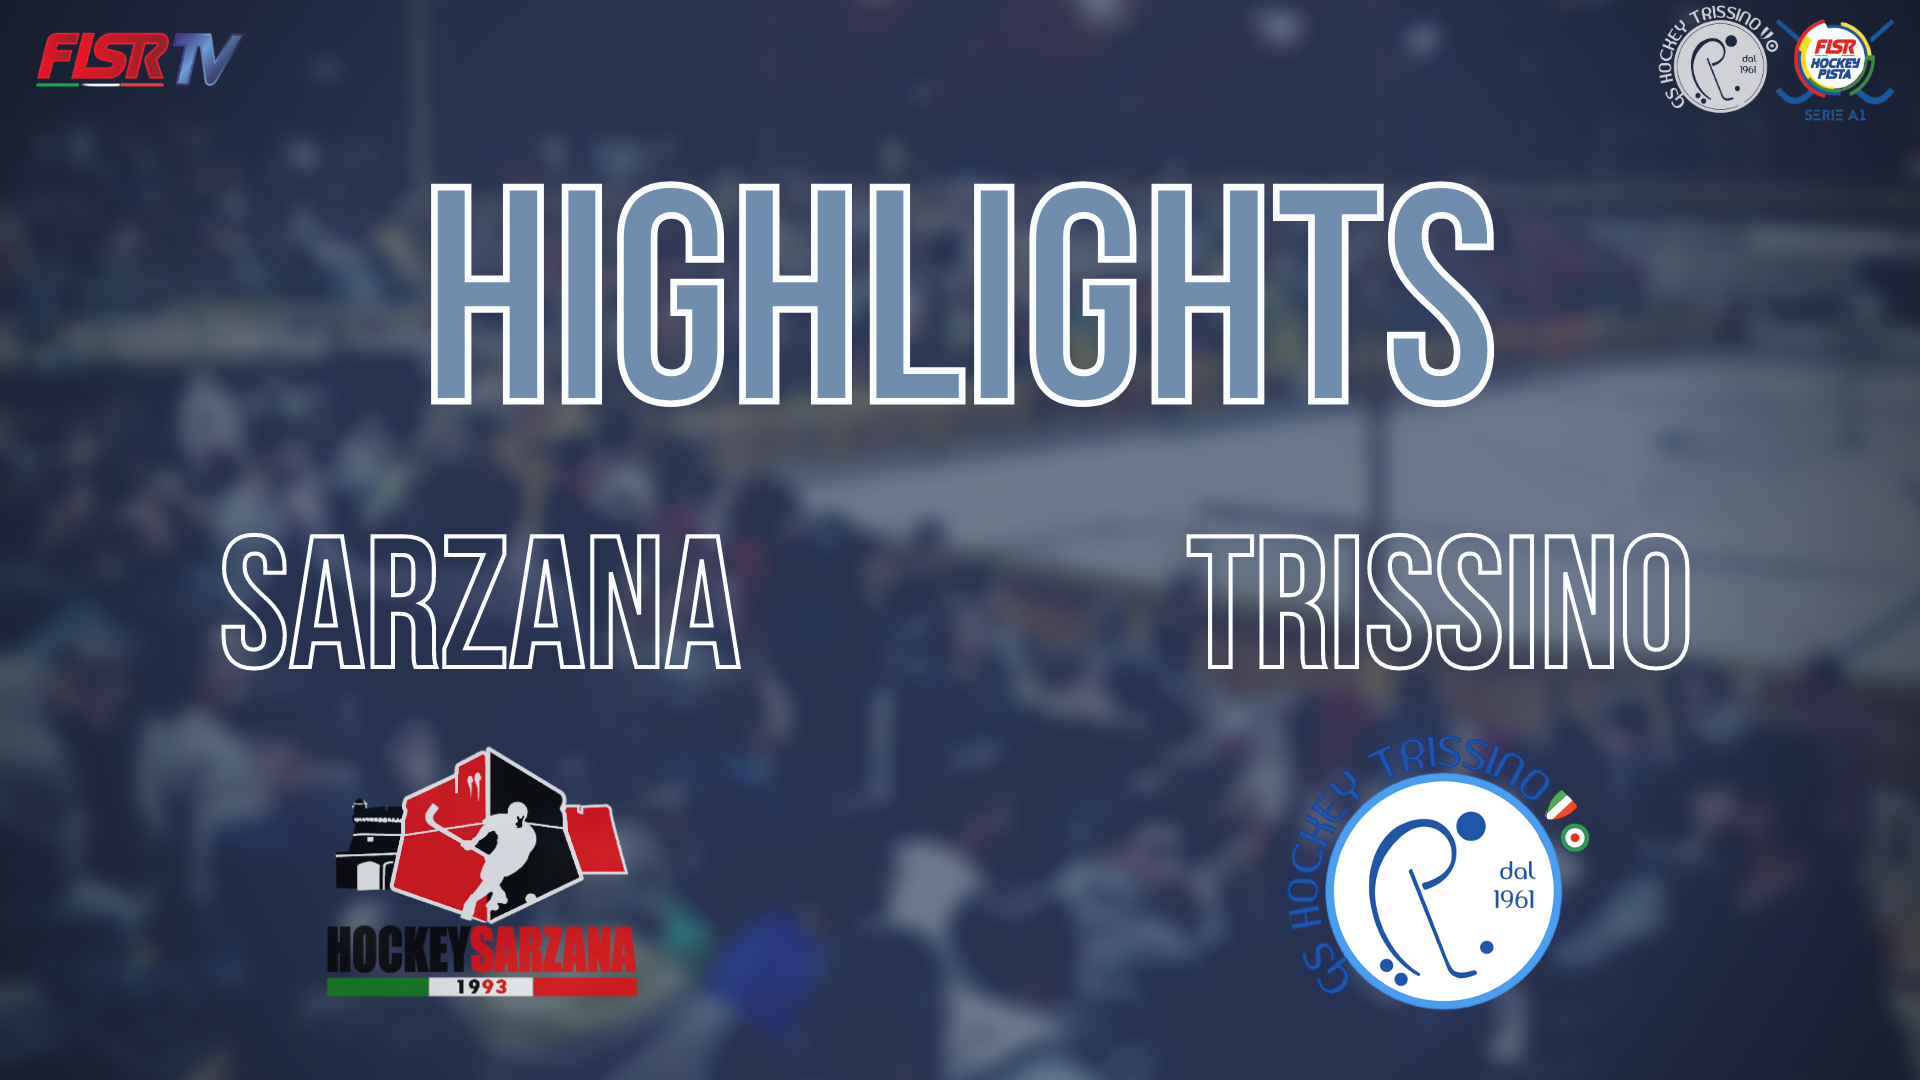 Sarzana vs Trissino (Highlights)